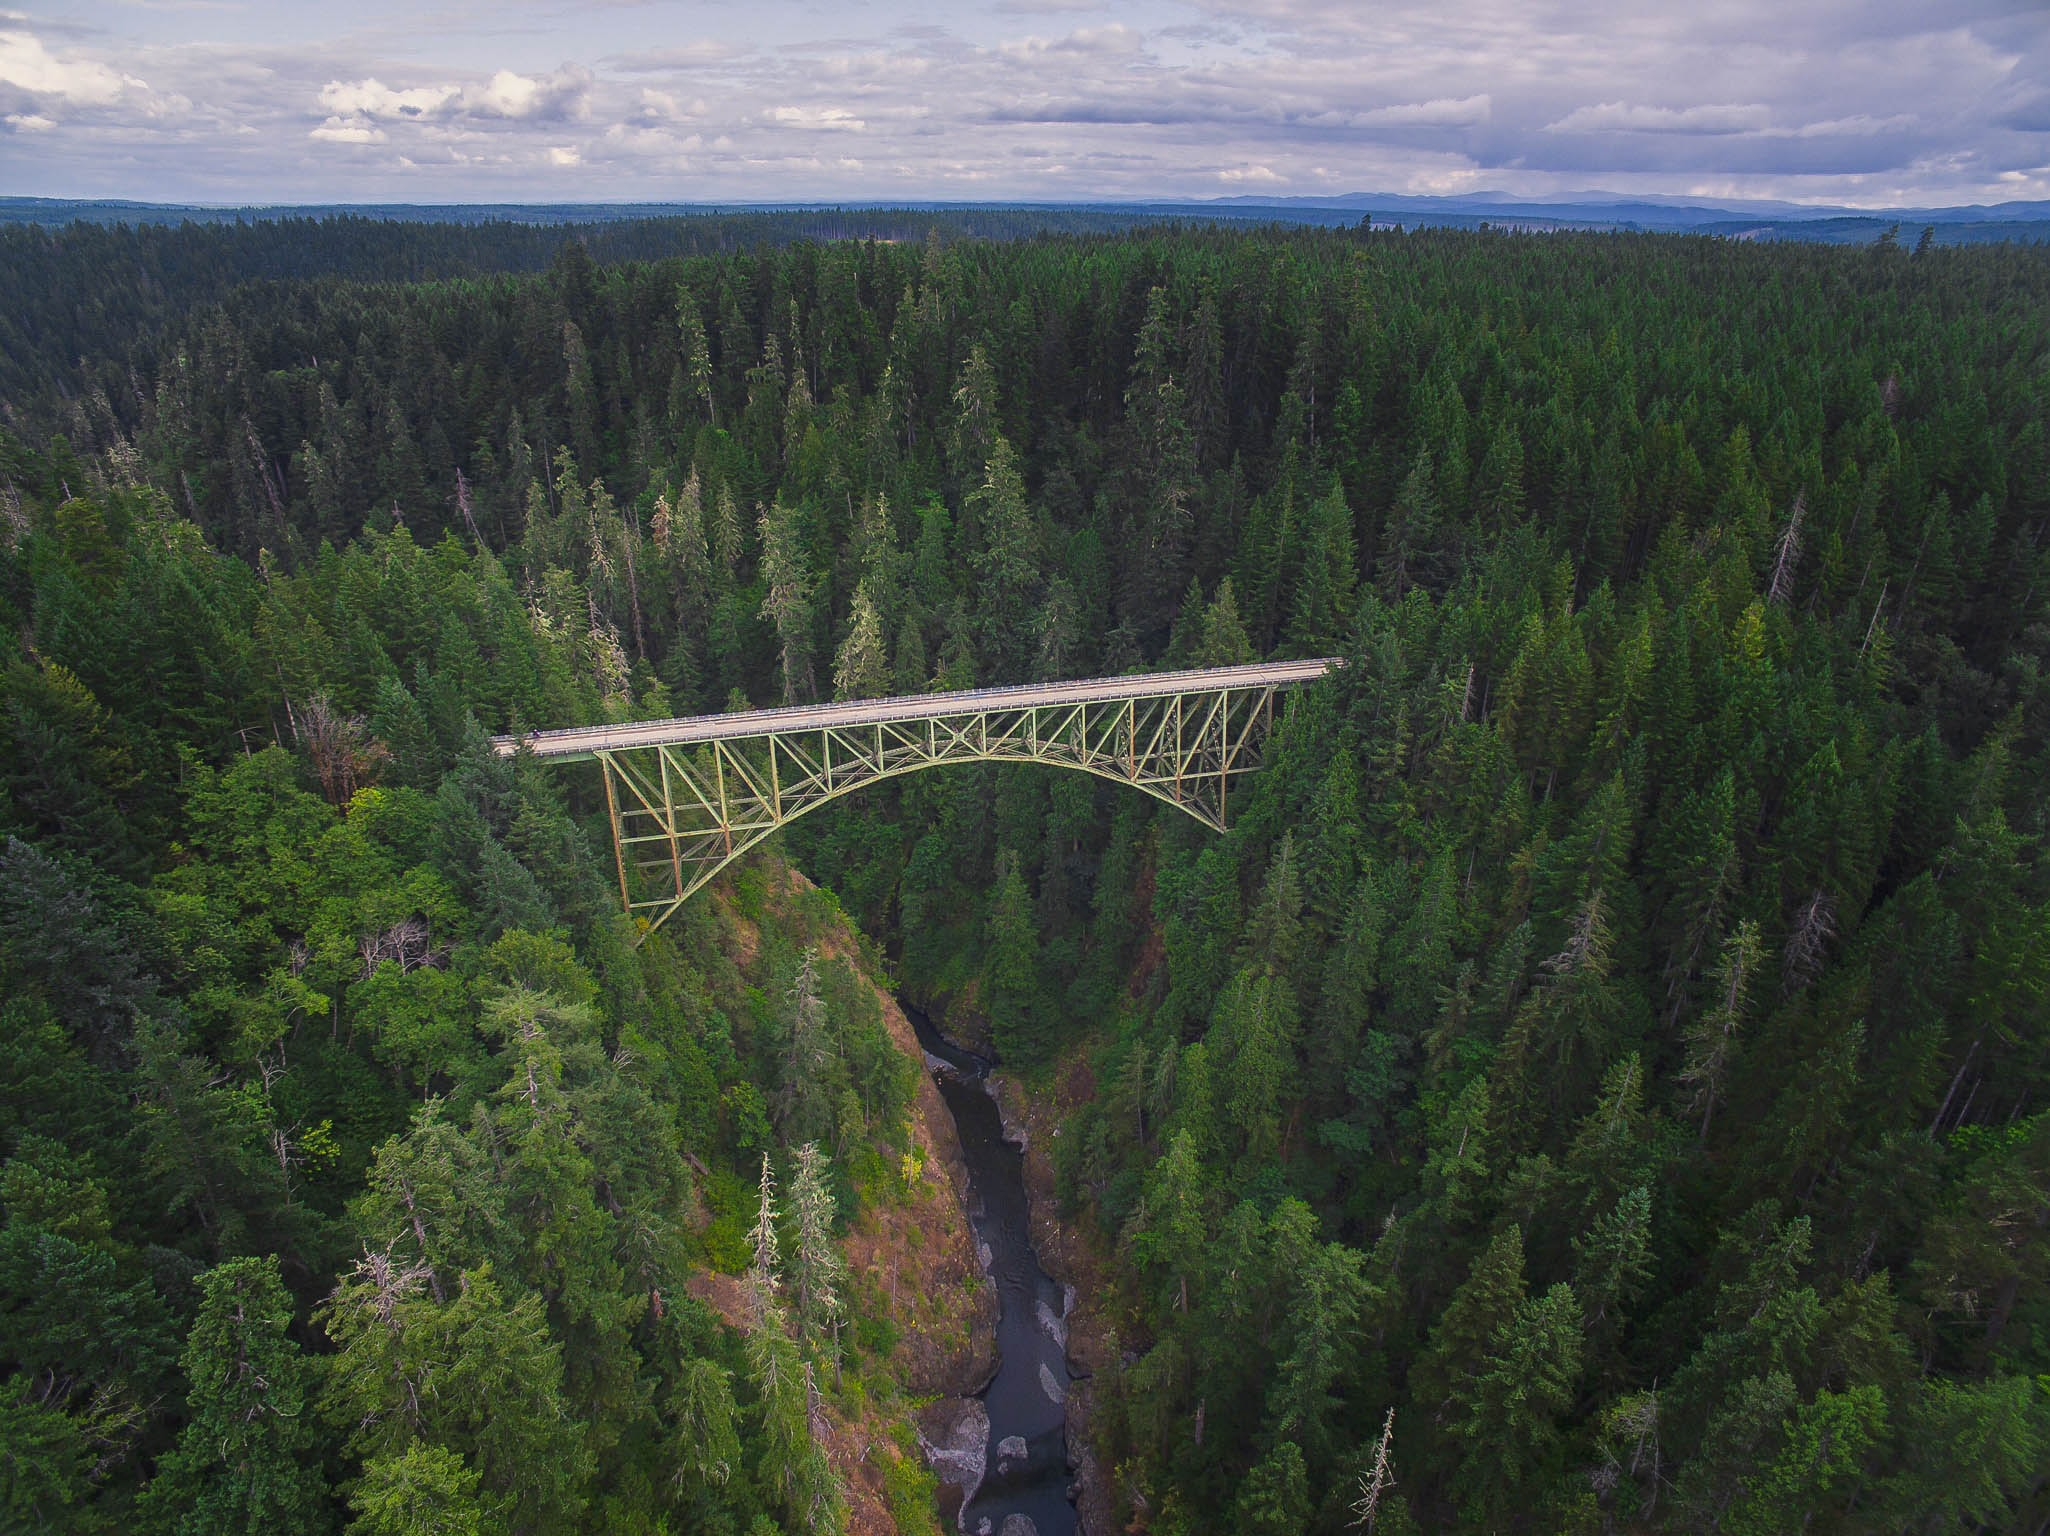 aerial photography of white bridge surrounded with green trees during daytime